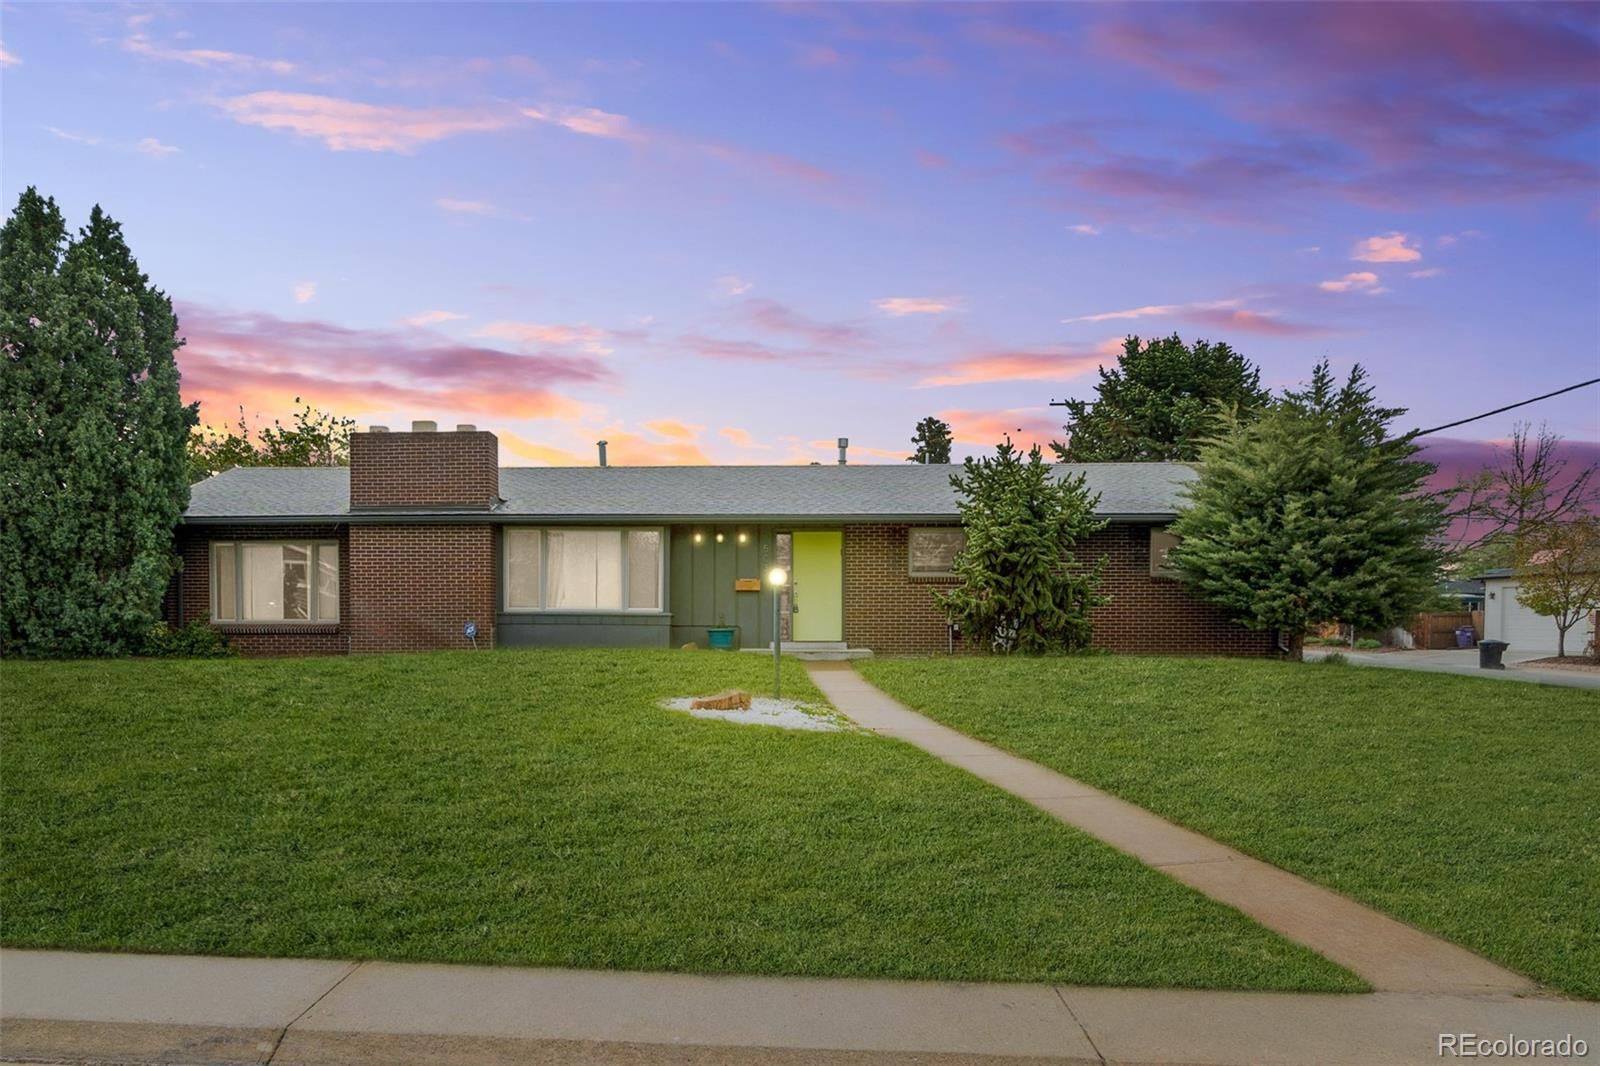 503 S Oneida Way, Denver CO 80224